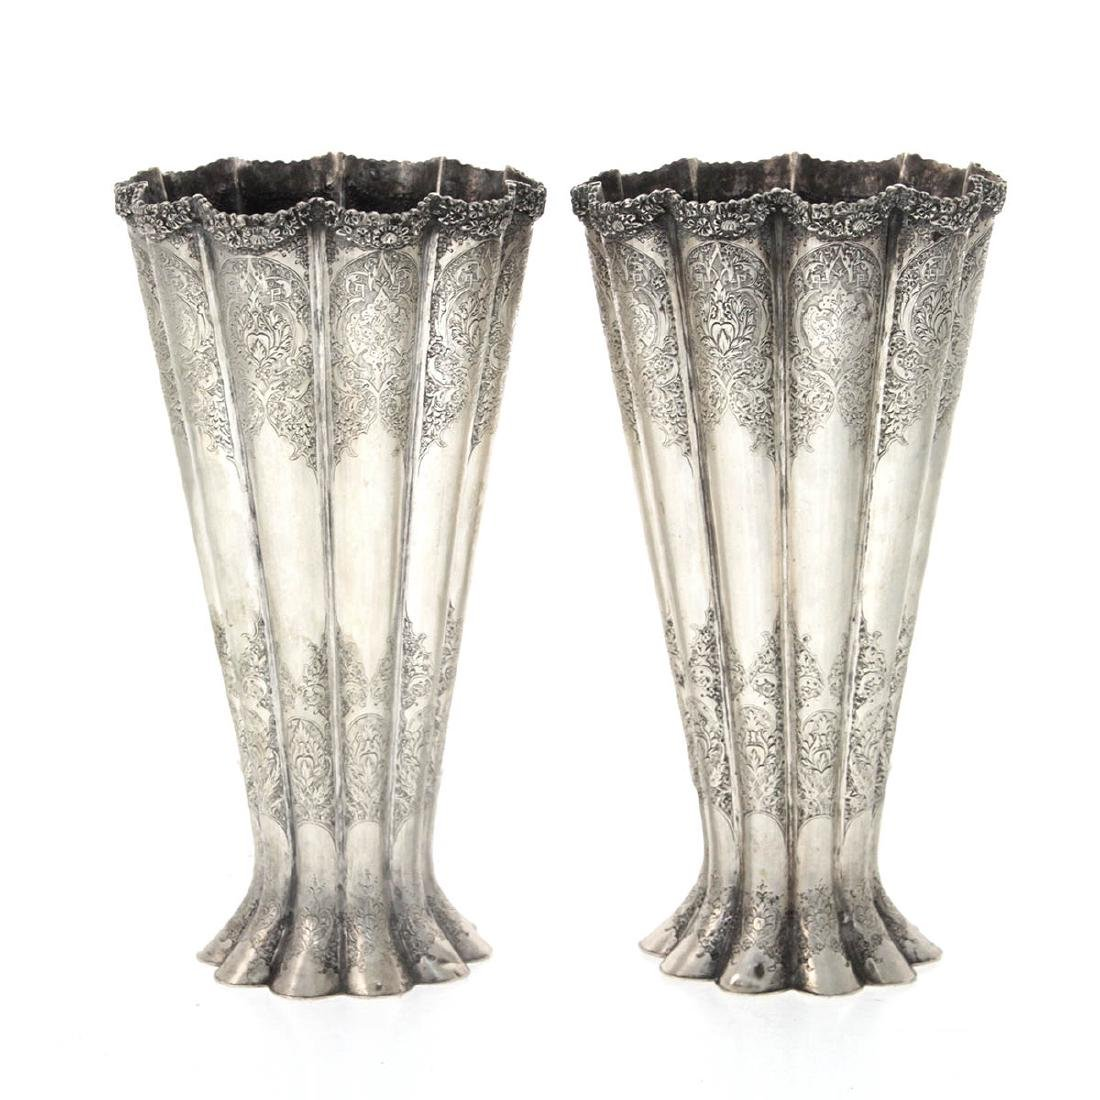 Pair of Persian Silver Vases, Early 20th Century.